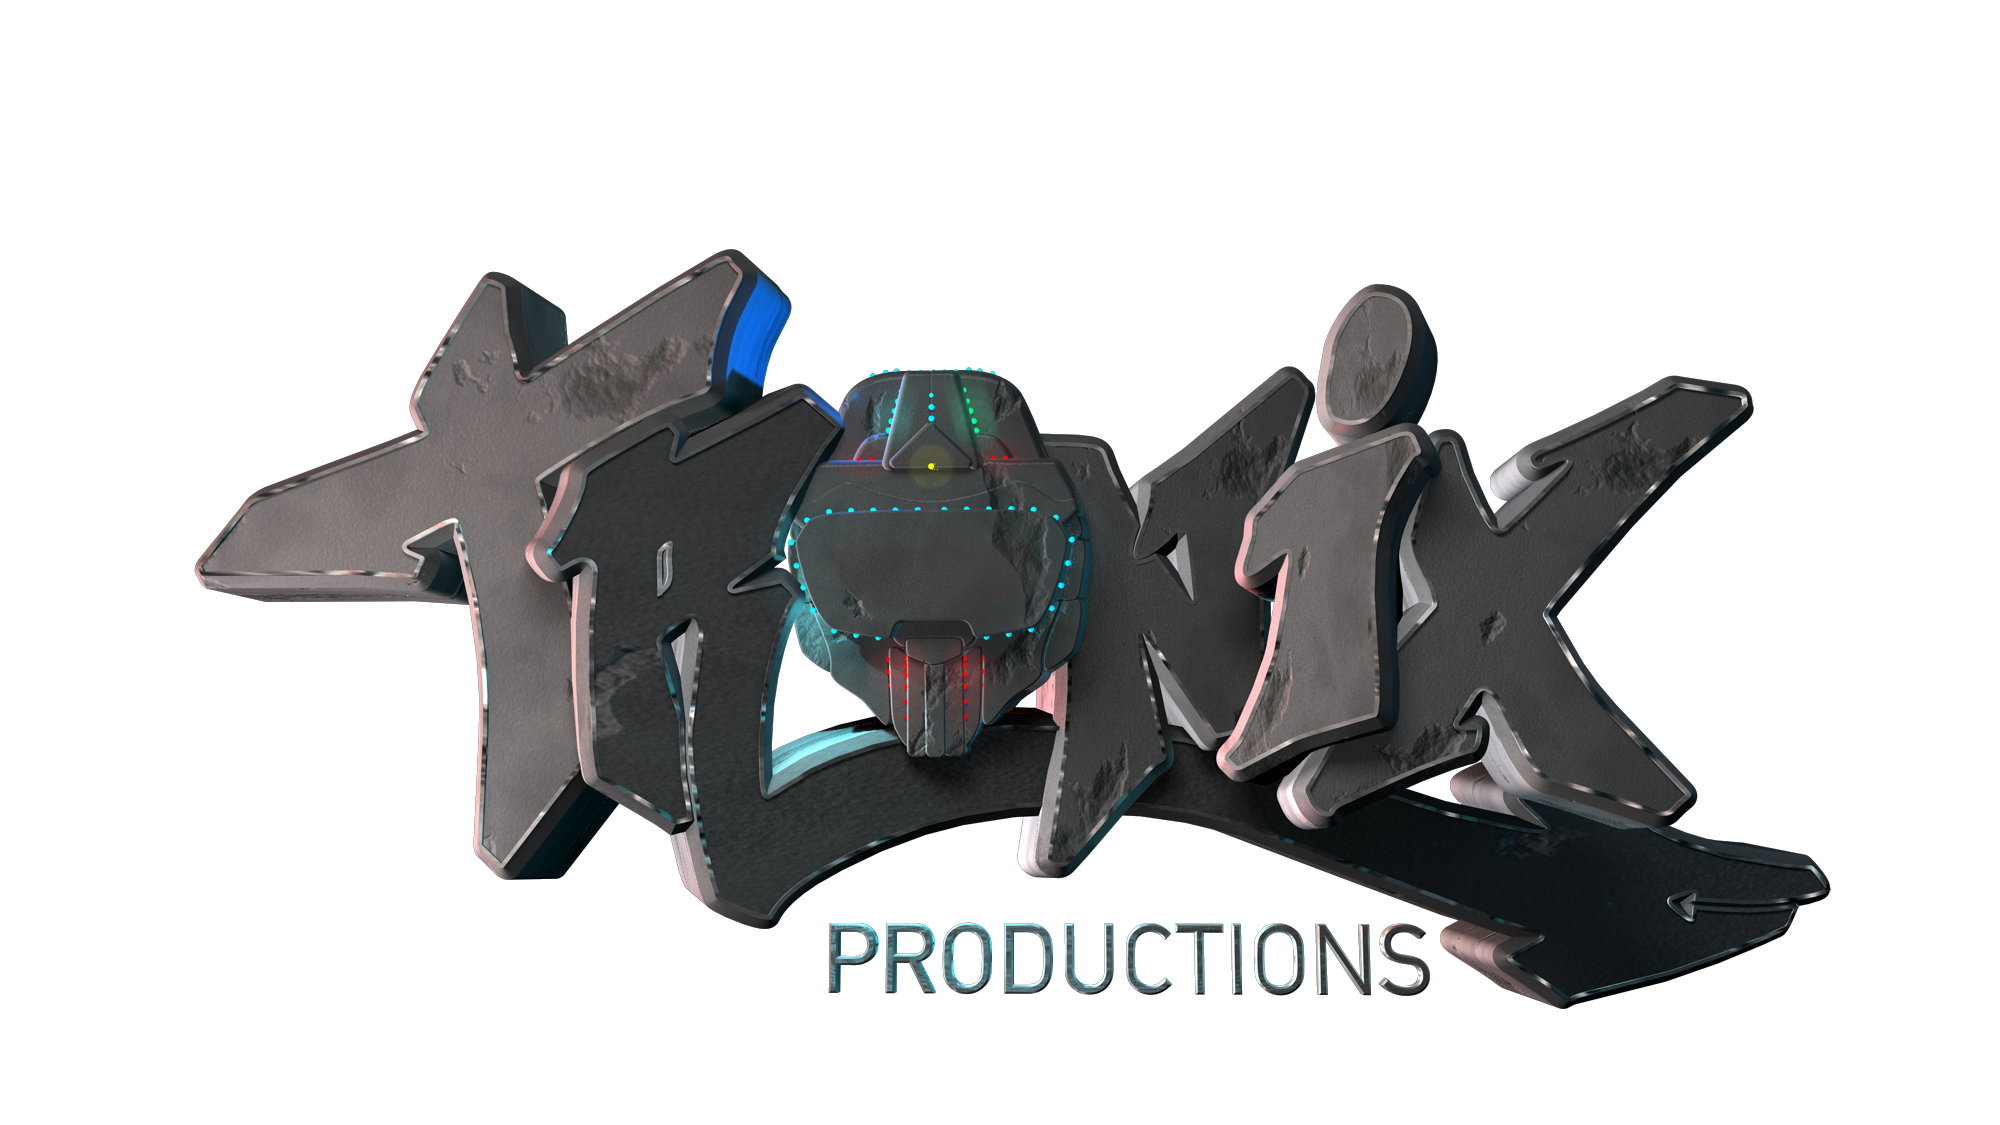 LOGO | Tronix Productions 6.png